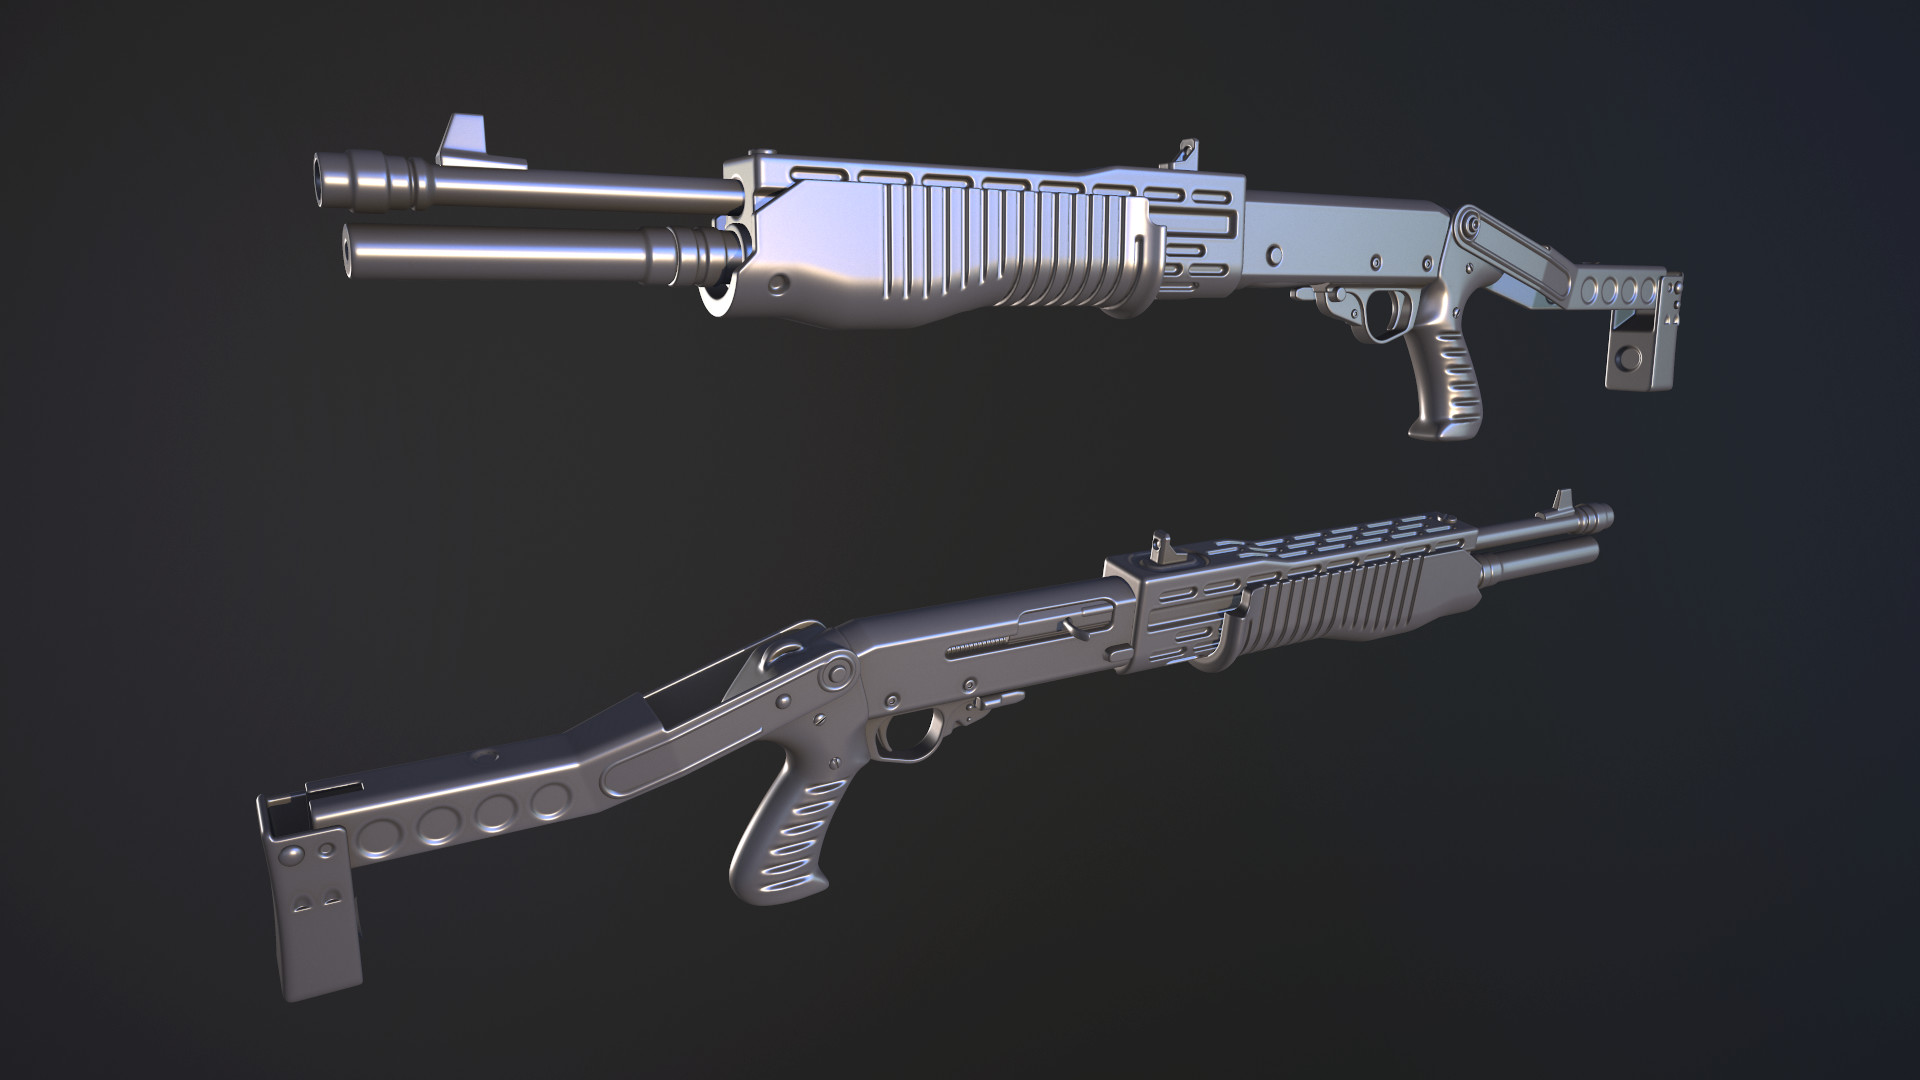 ArtStation - Third Person Weapons, Dave Watts